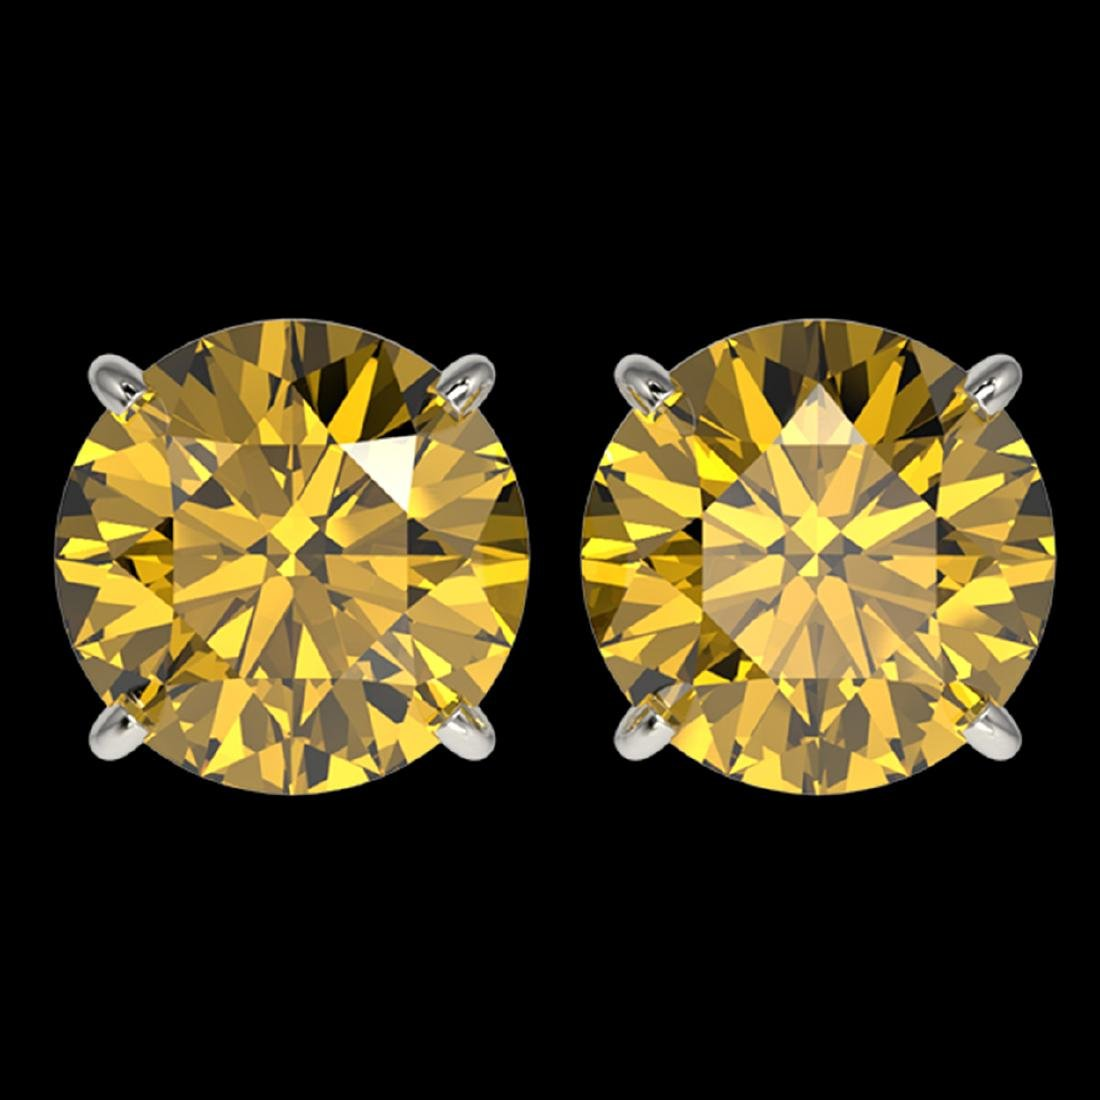 4 ctw Intense Yellow Diamond Stud Earrings 10K White